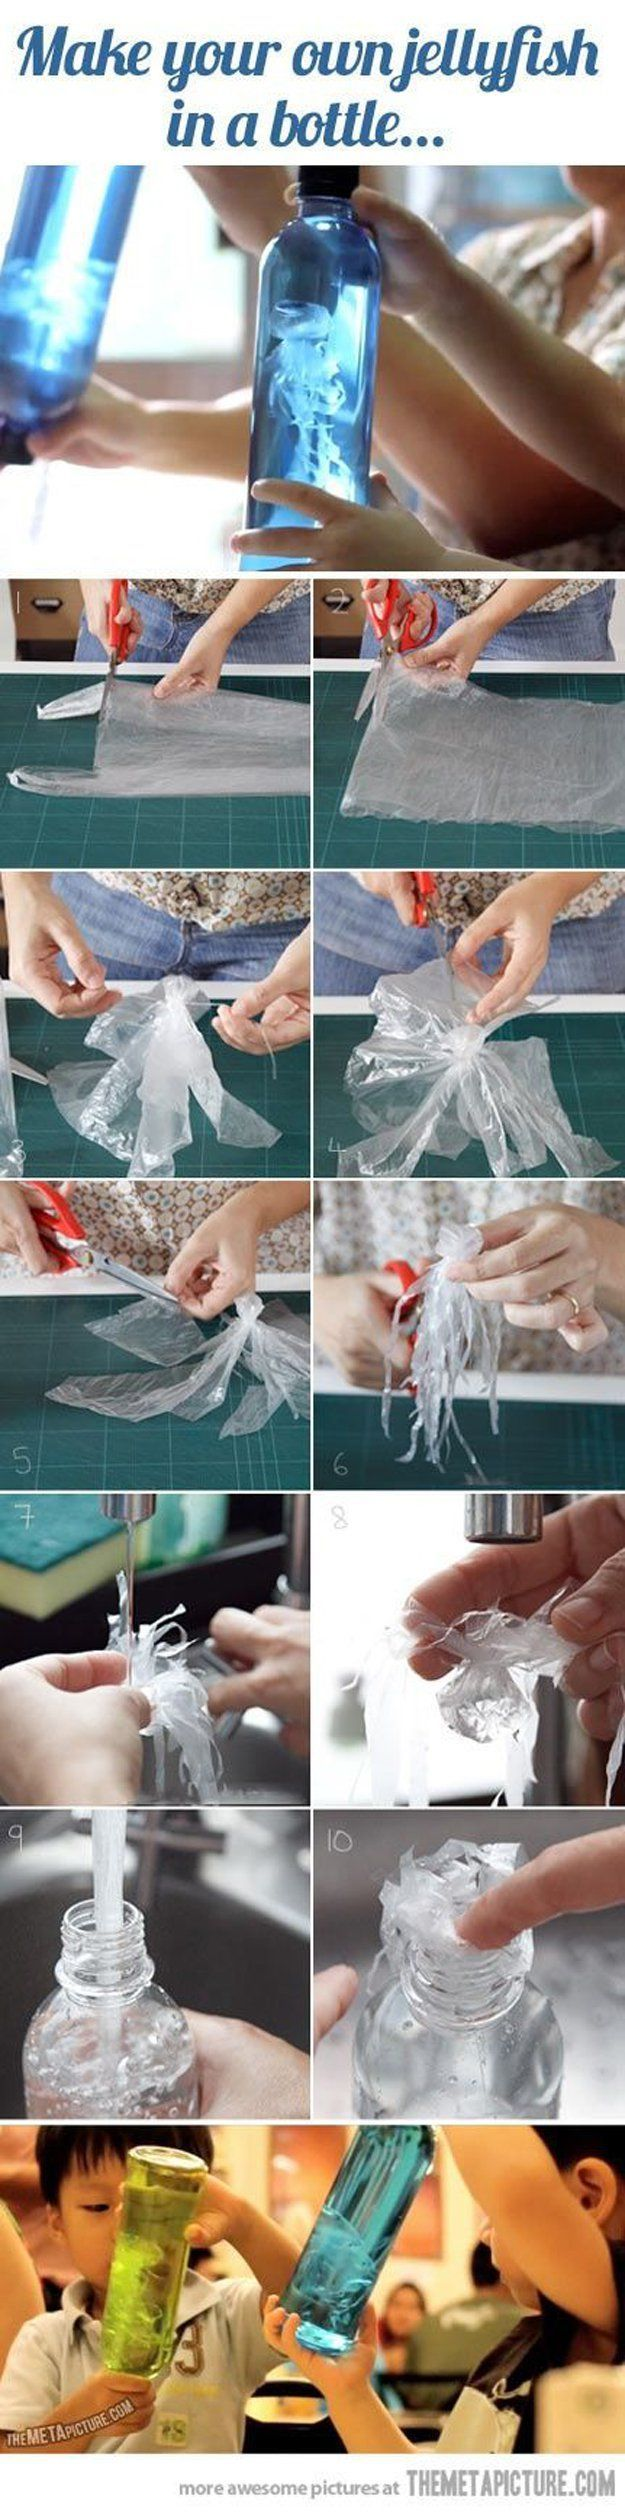 DIY Kids Crafts You Can Make in Under an Hour http://DIYReady.com | Easy DIY Crafts, Fun Projects, & DIY Craft Ideas For Kids & Adults